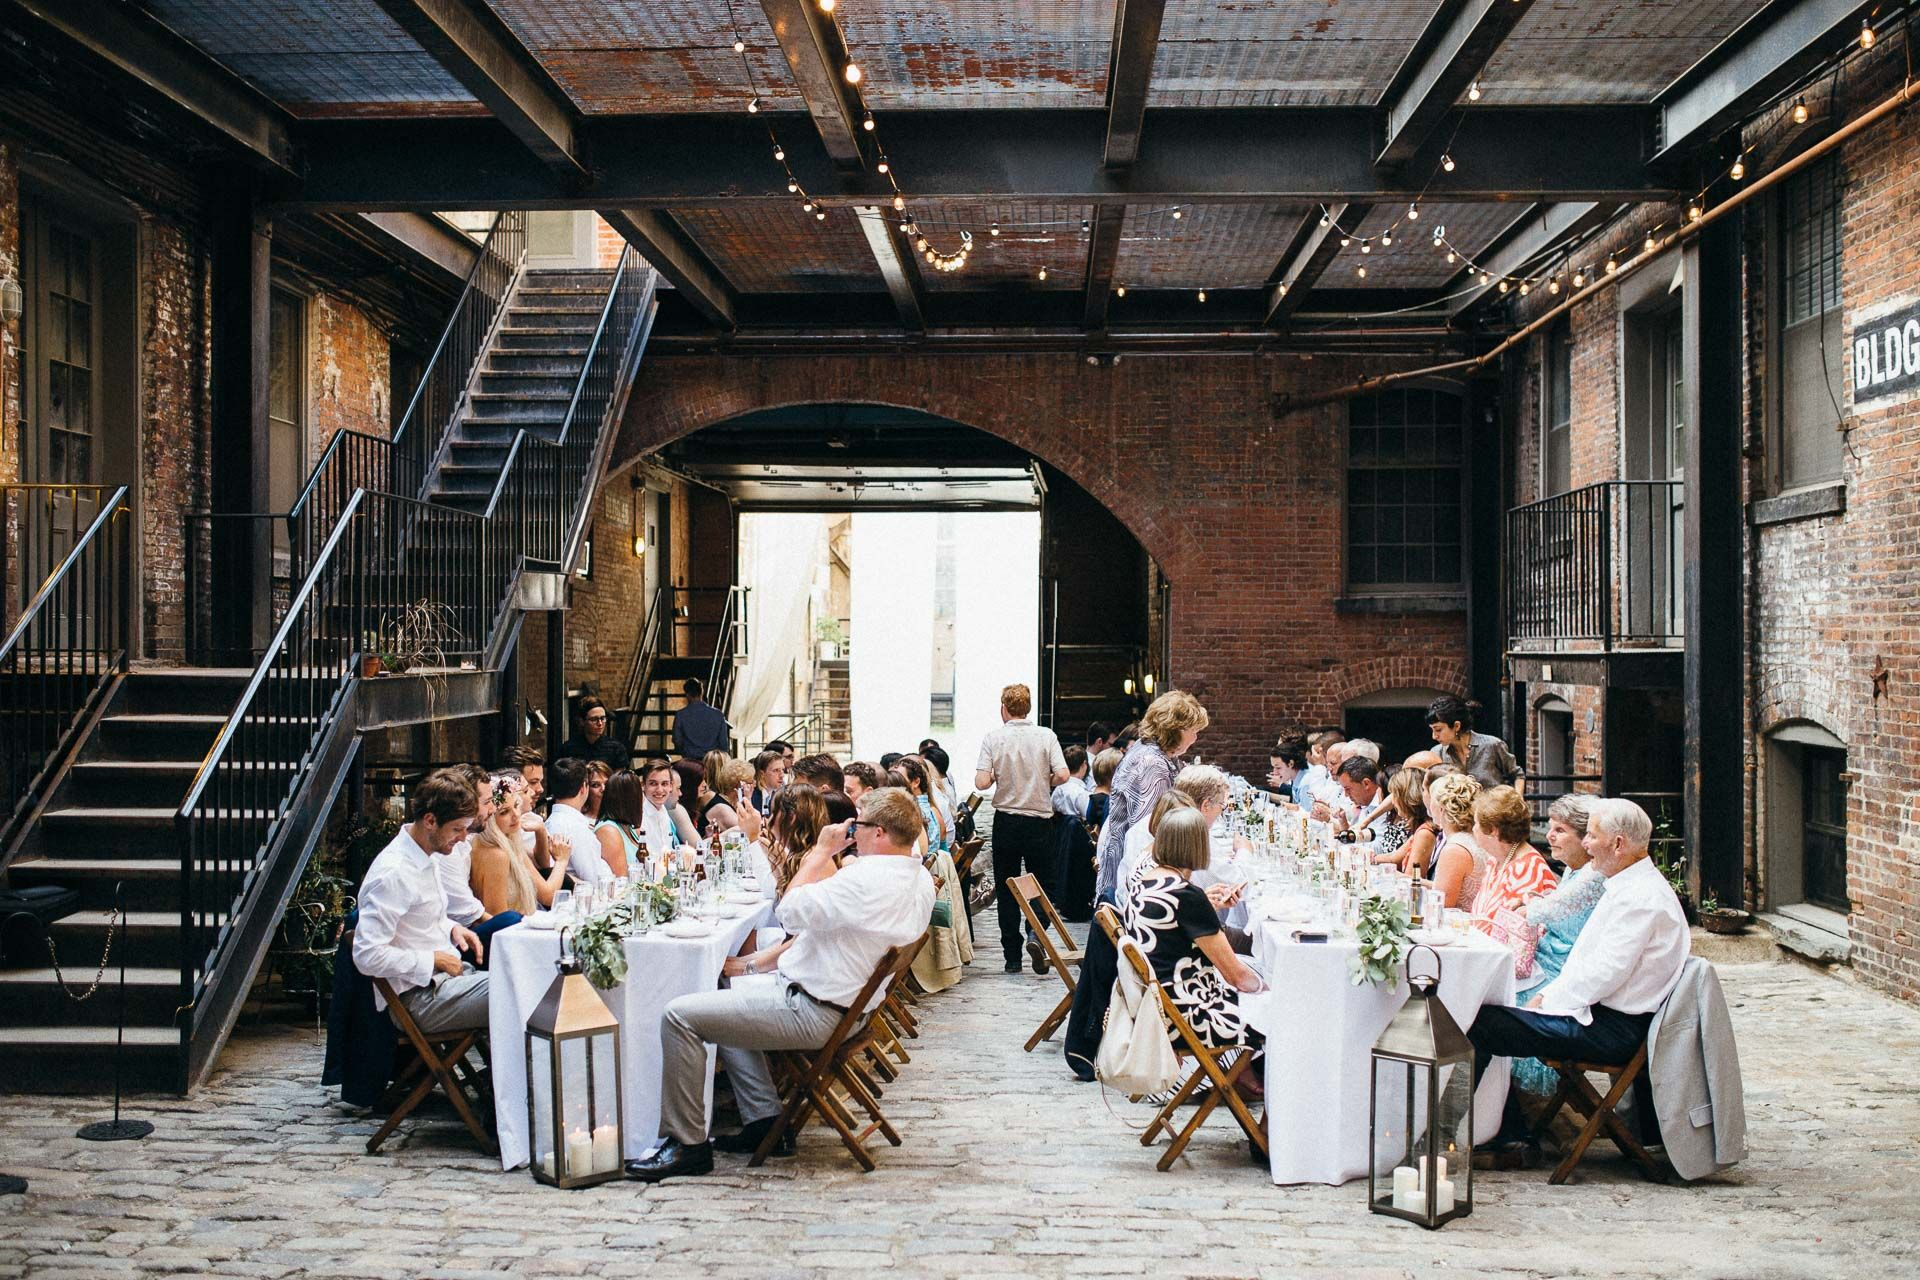 Maris & Brock's Wedding at The Glasserie, Greenpoint,Brooklyn, New